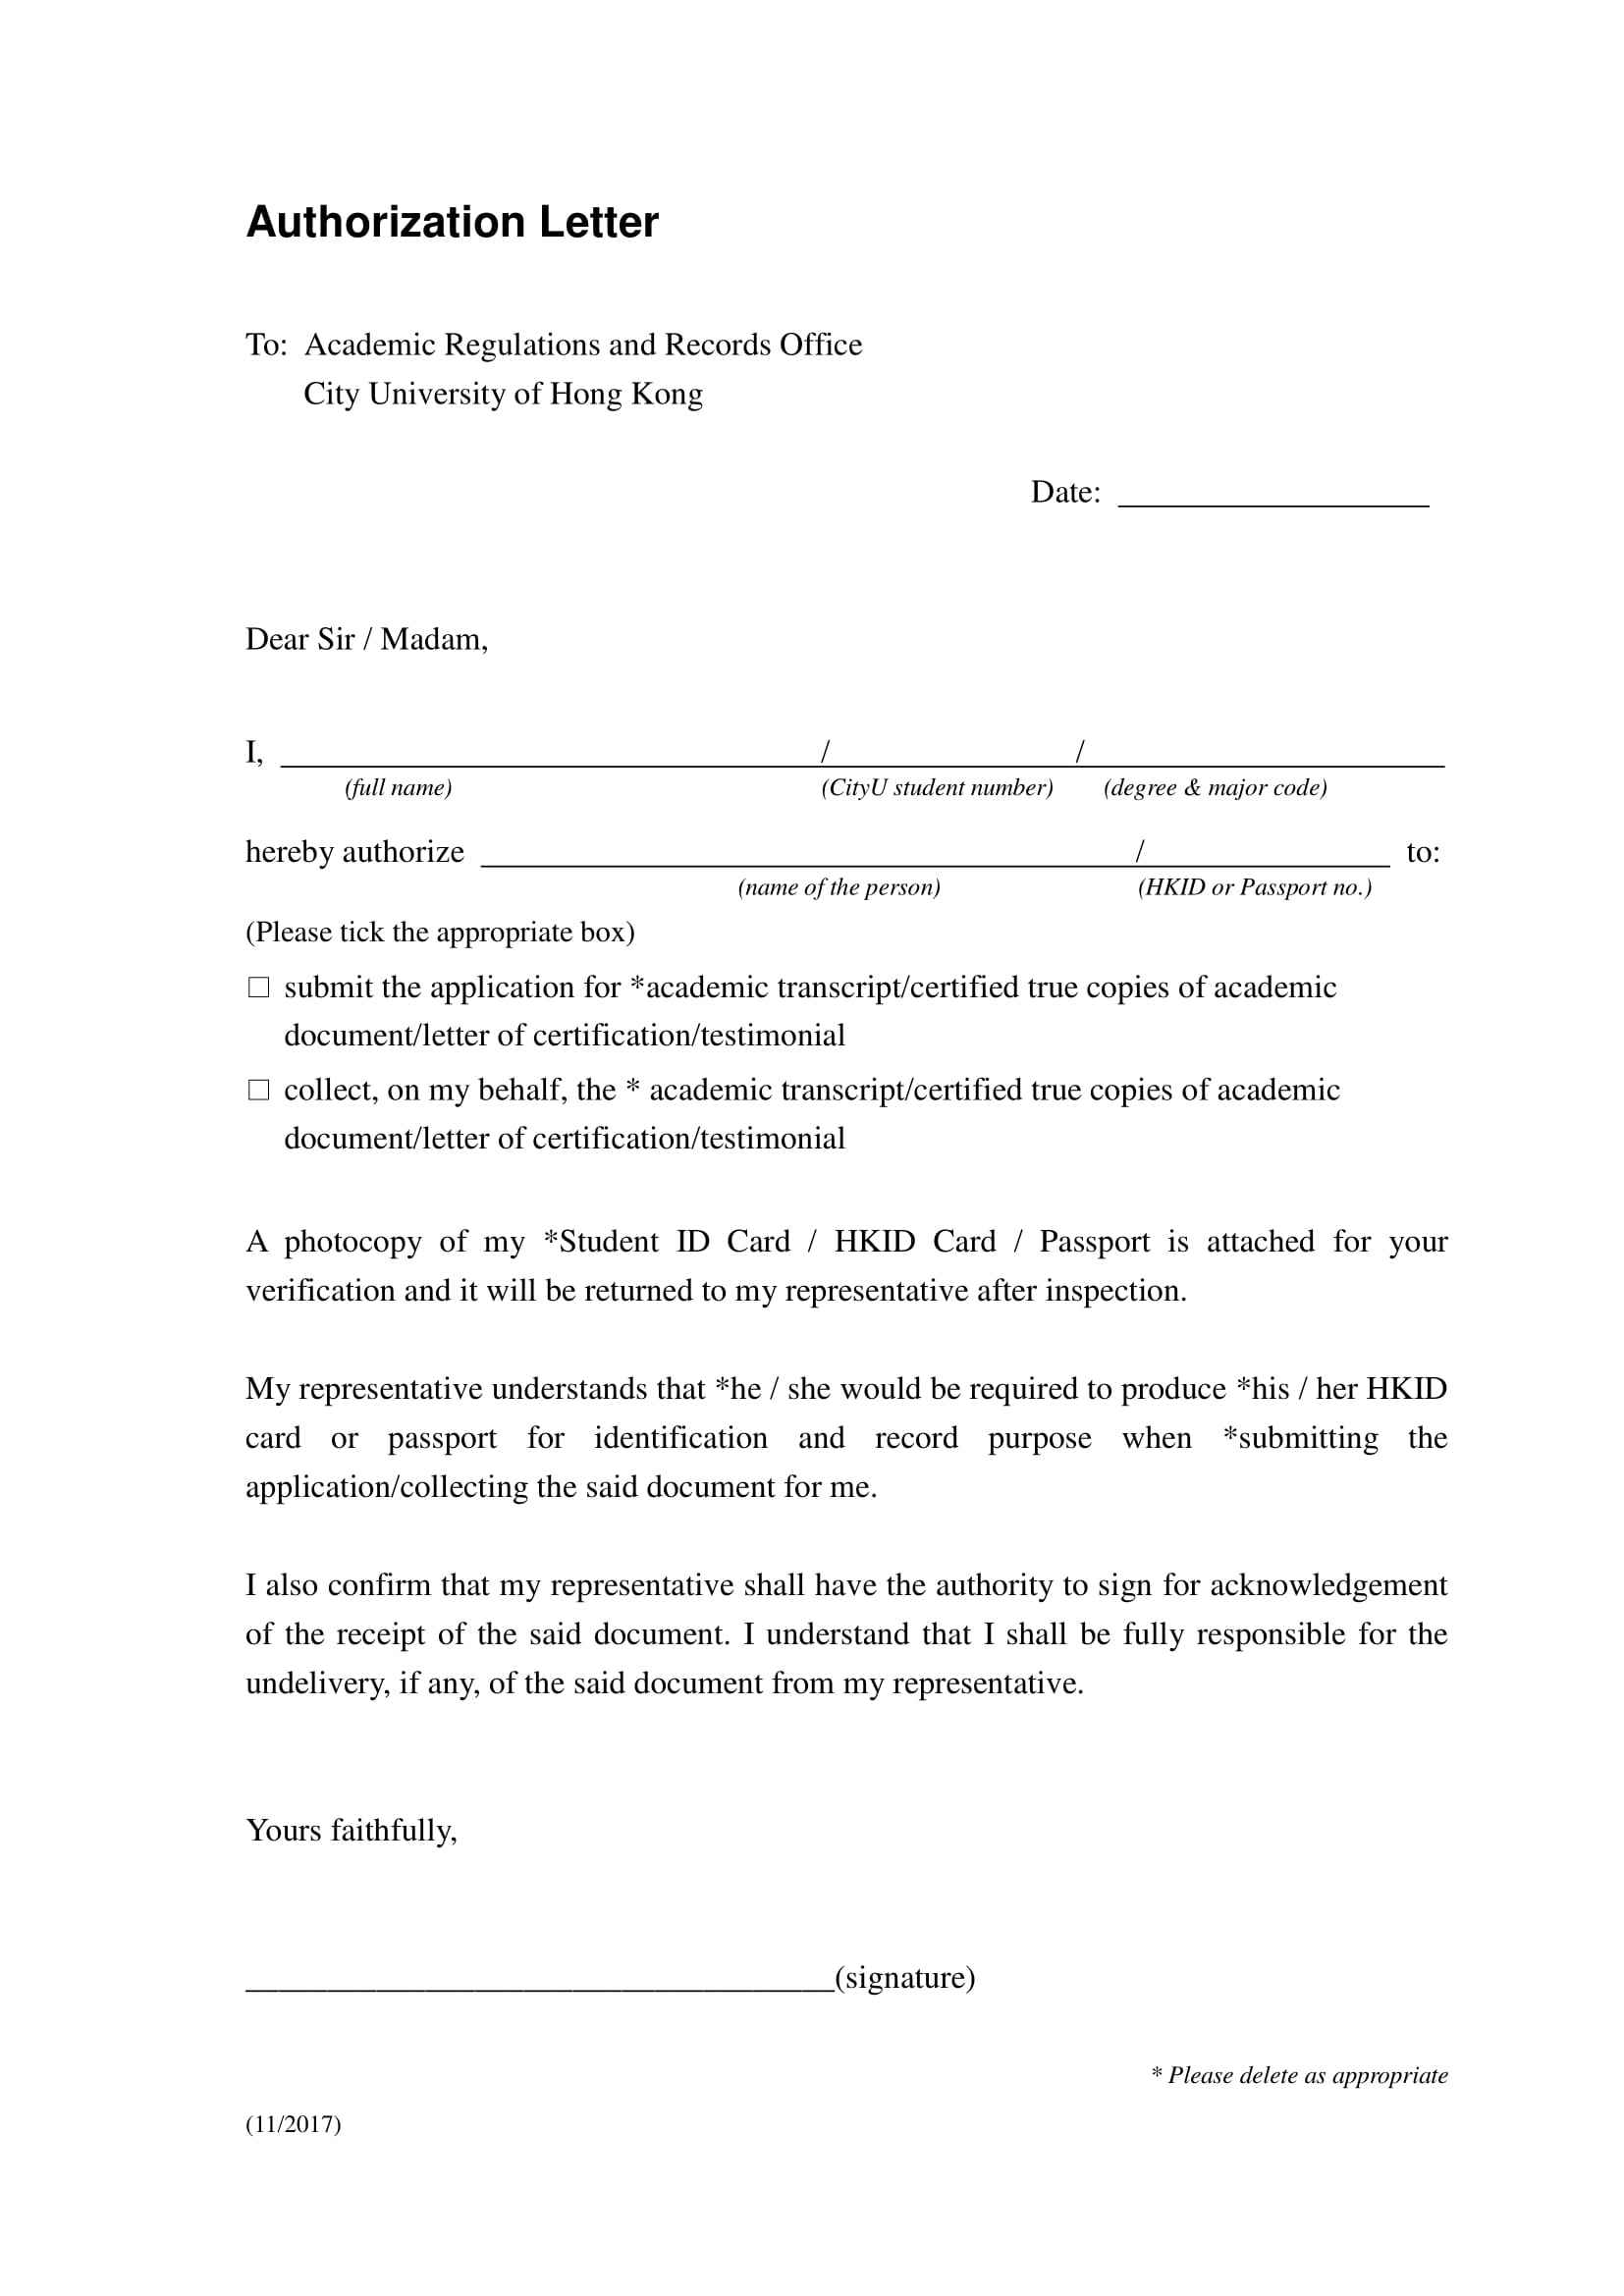 authorization letter to submit collect and receive academic documents example 1